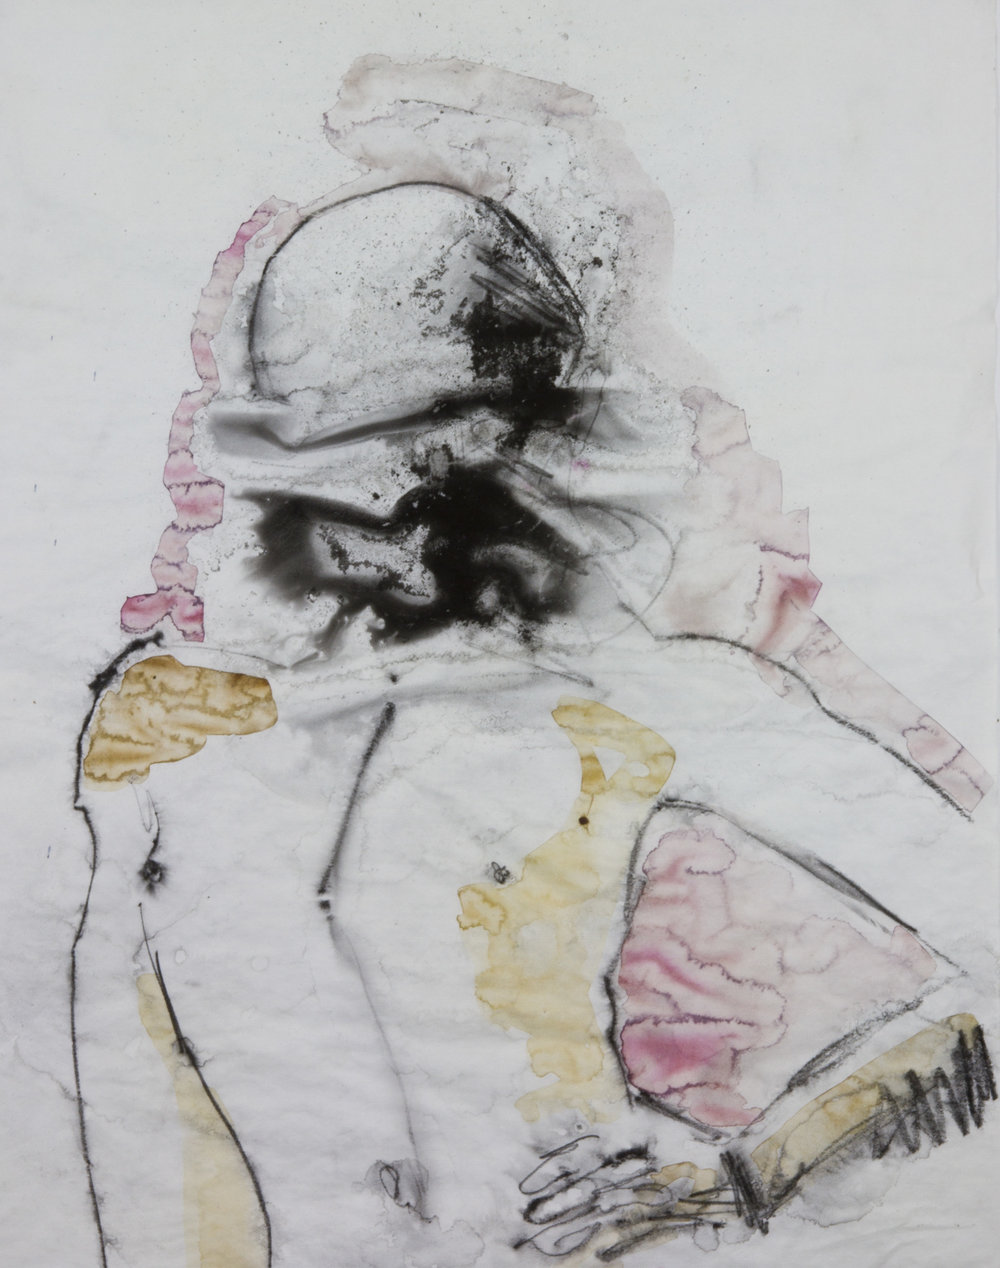 Blind Hood, 2012, watercolor and acrylic on tracing paper, 18x24 inches